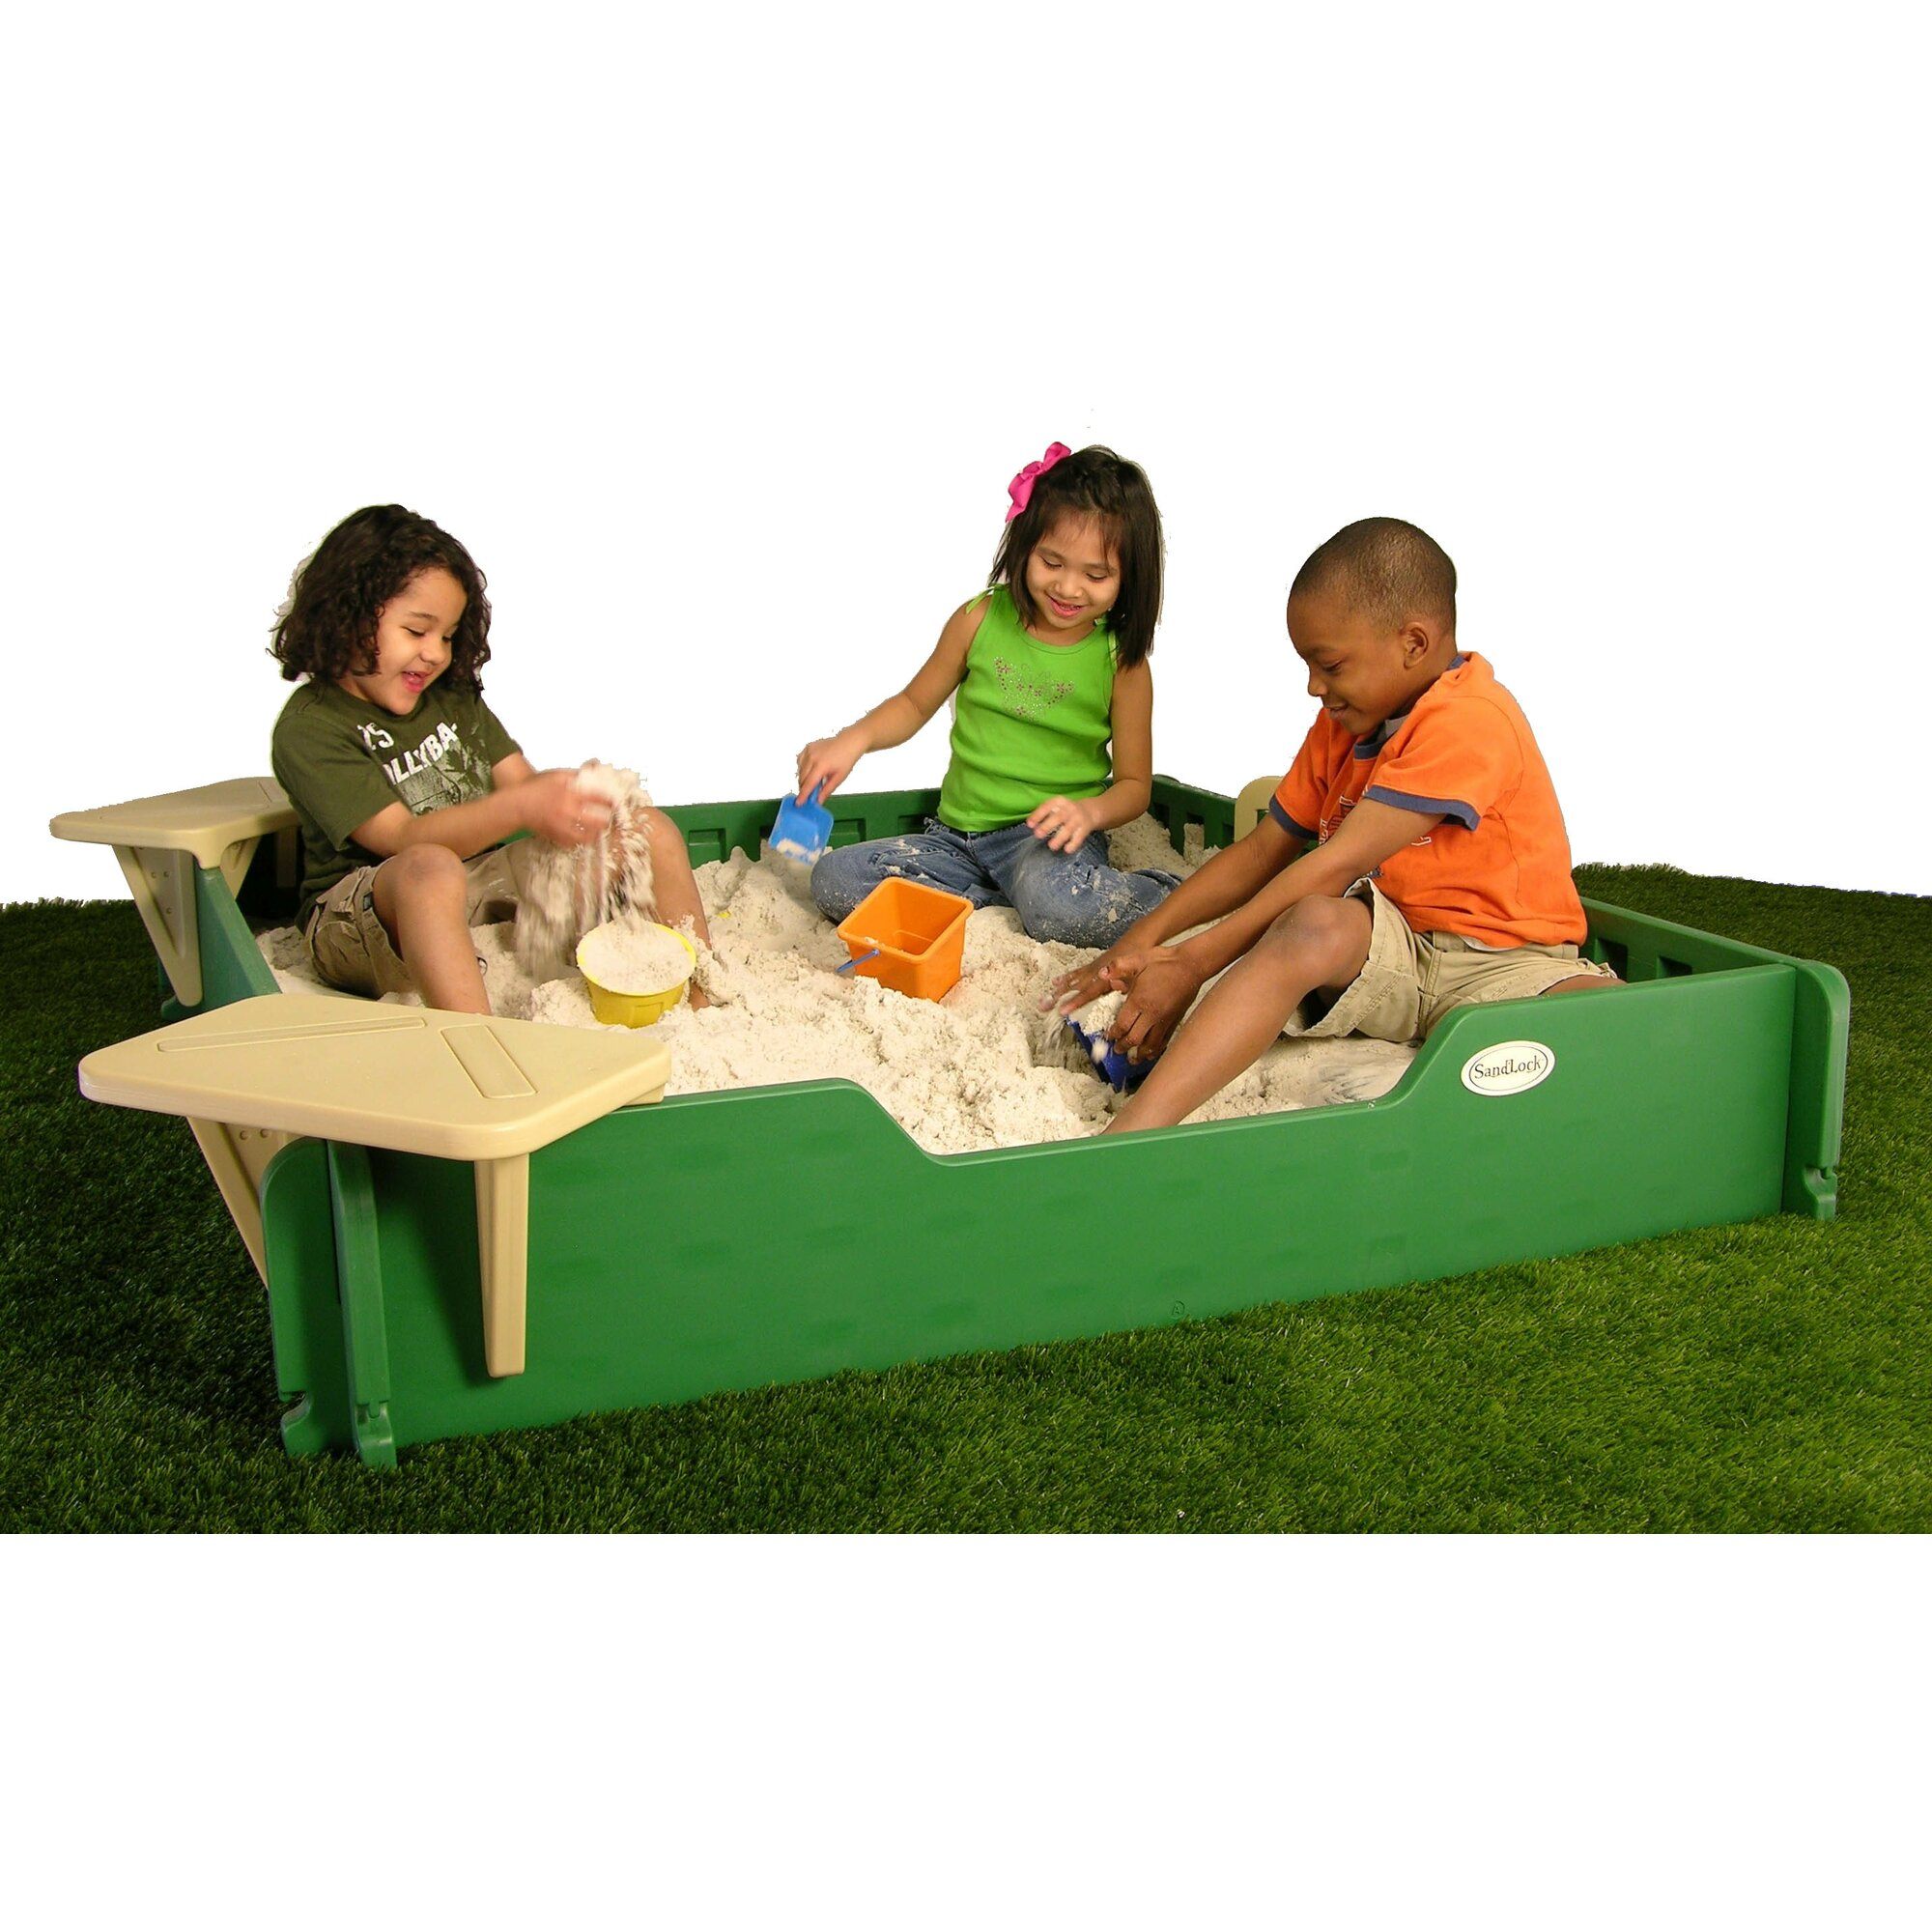 Sandlock Square Sandbox With Cover & Reviews